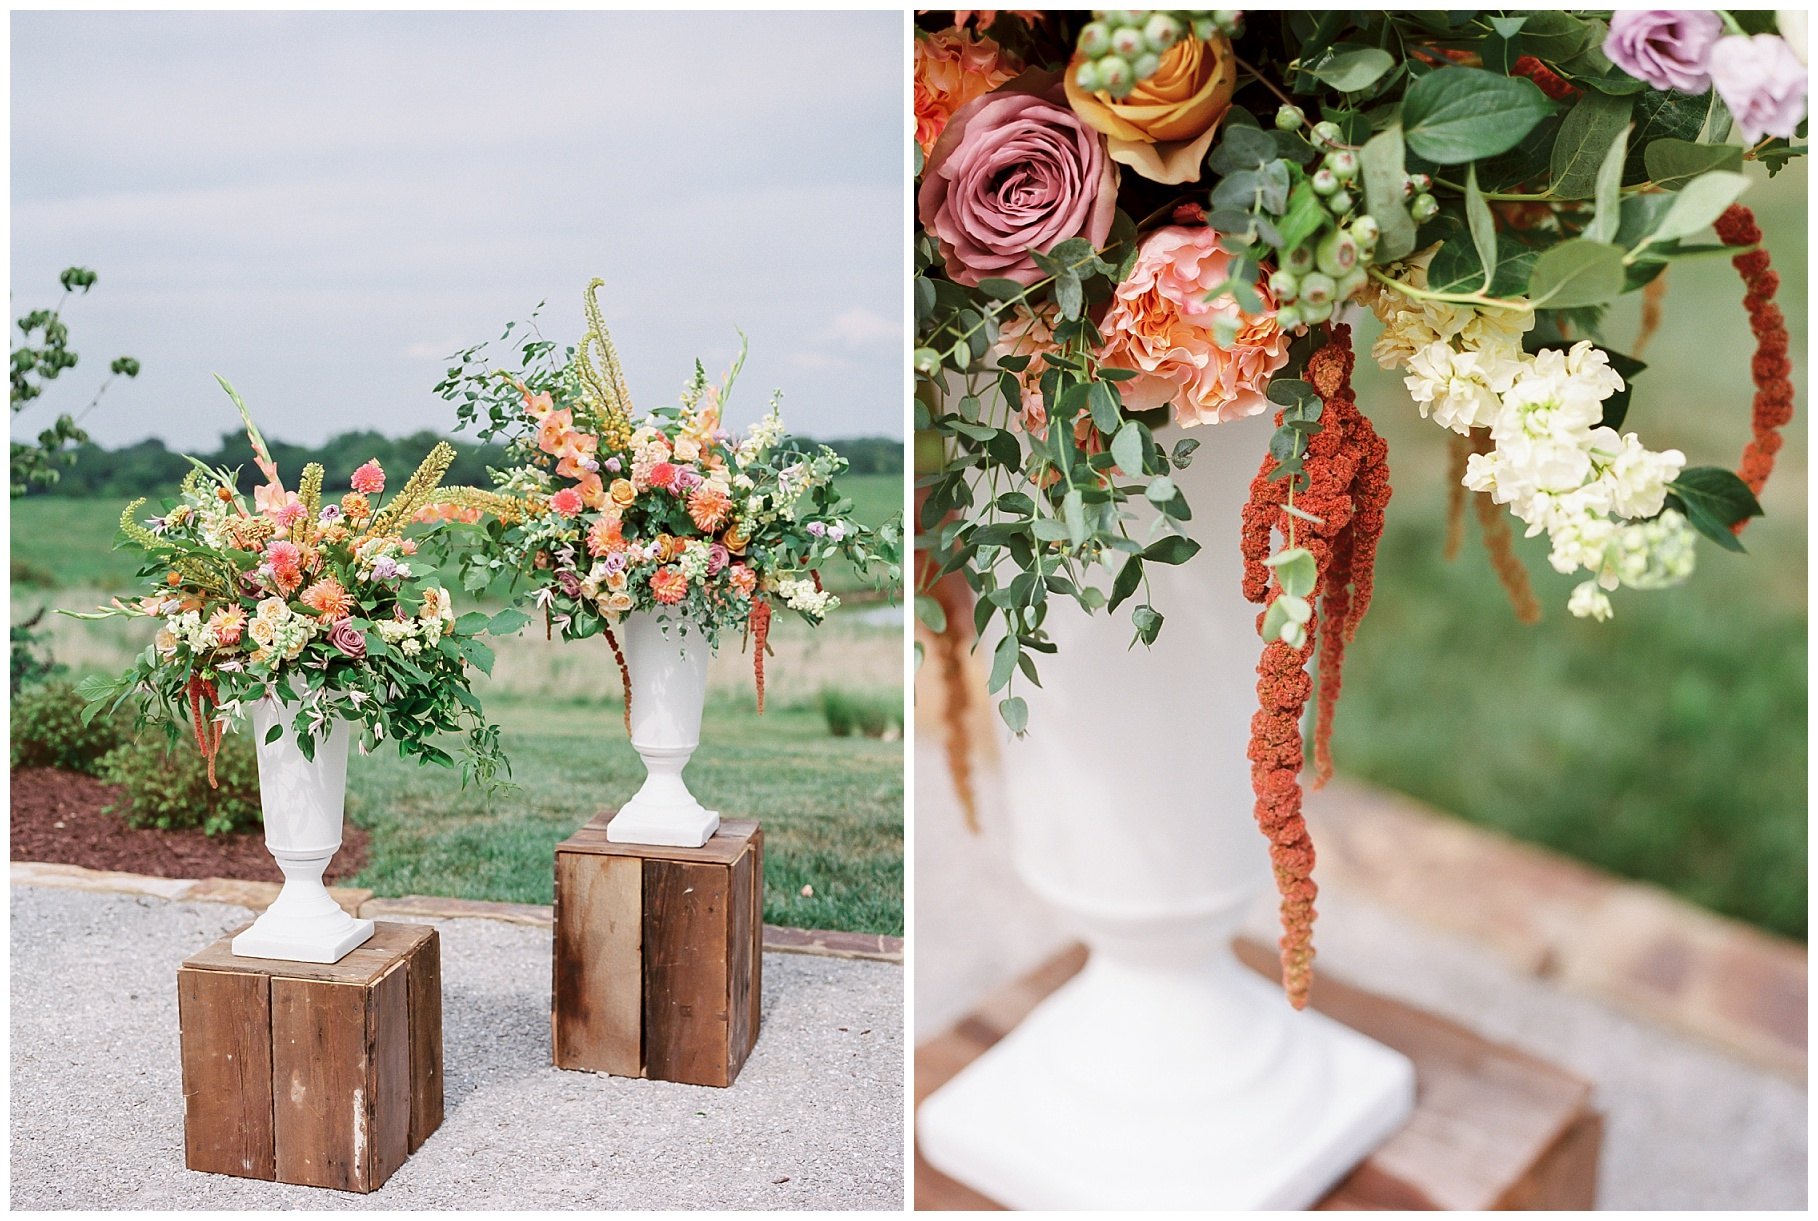 Late Summer Wedding With Pastel Toned Soiree at Blue Bell Farm by Kelsi Kliethermes Photography Best Columbia Missouri Wedding Photographer_0066.jpg